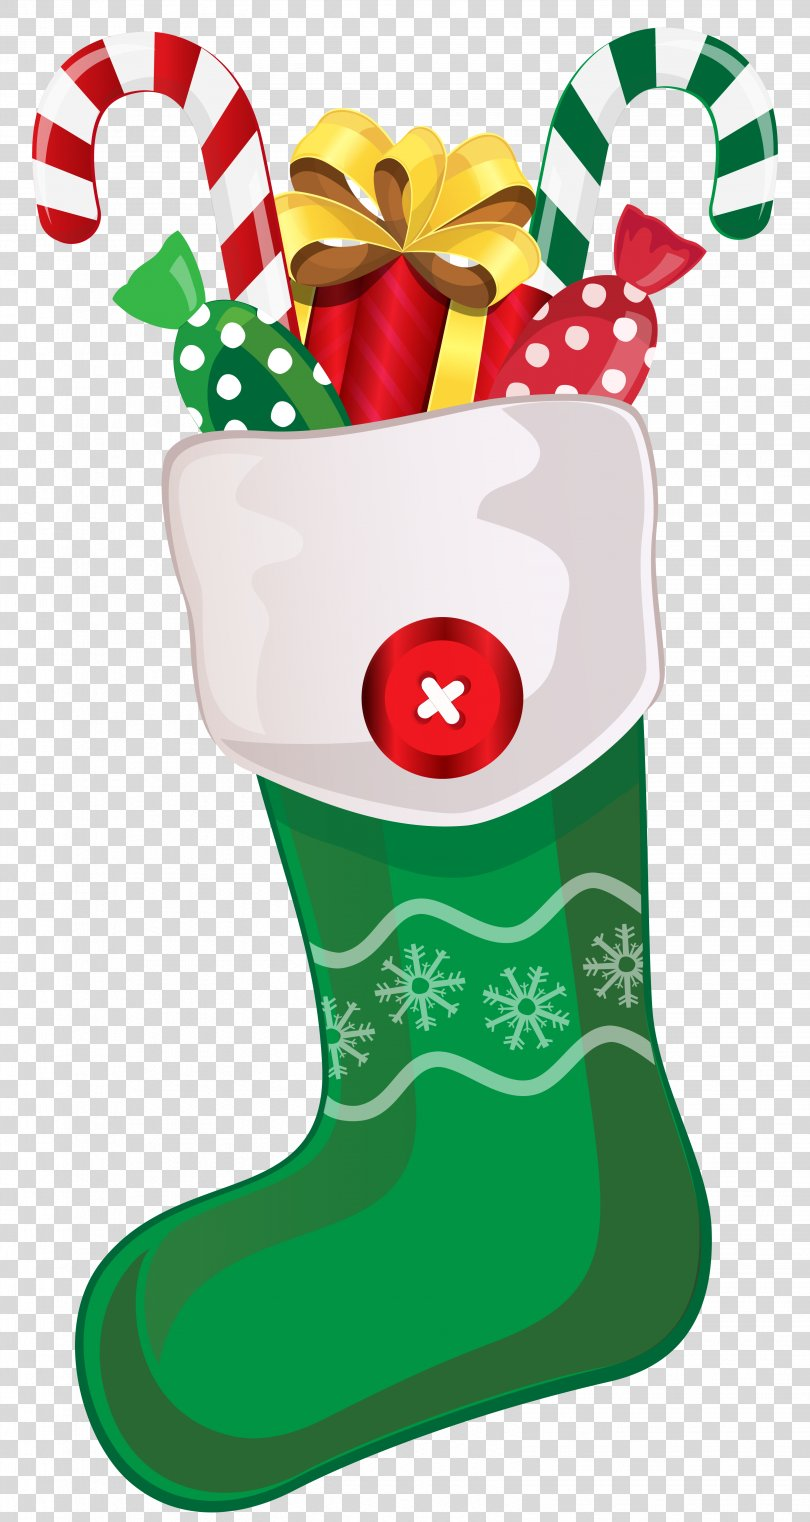 Candy Cane Christmas Stocking Clip Art, Christmas Green Cliparts PNG